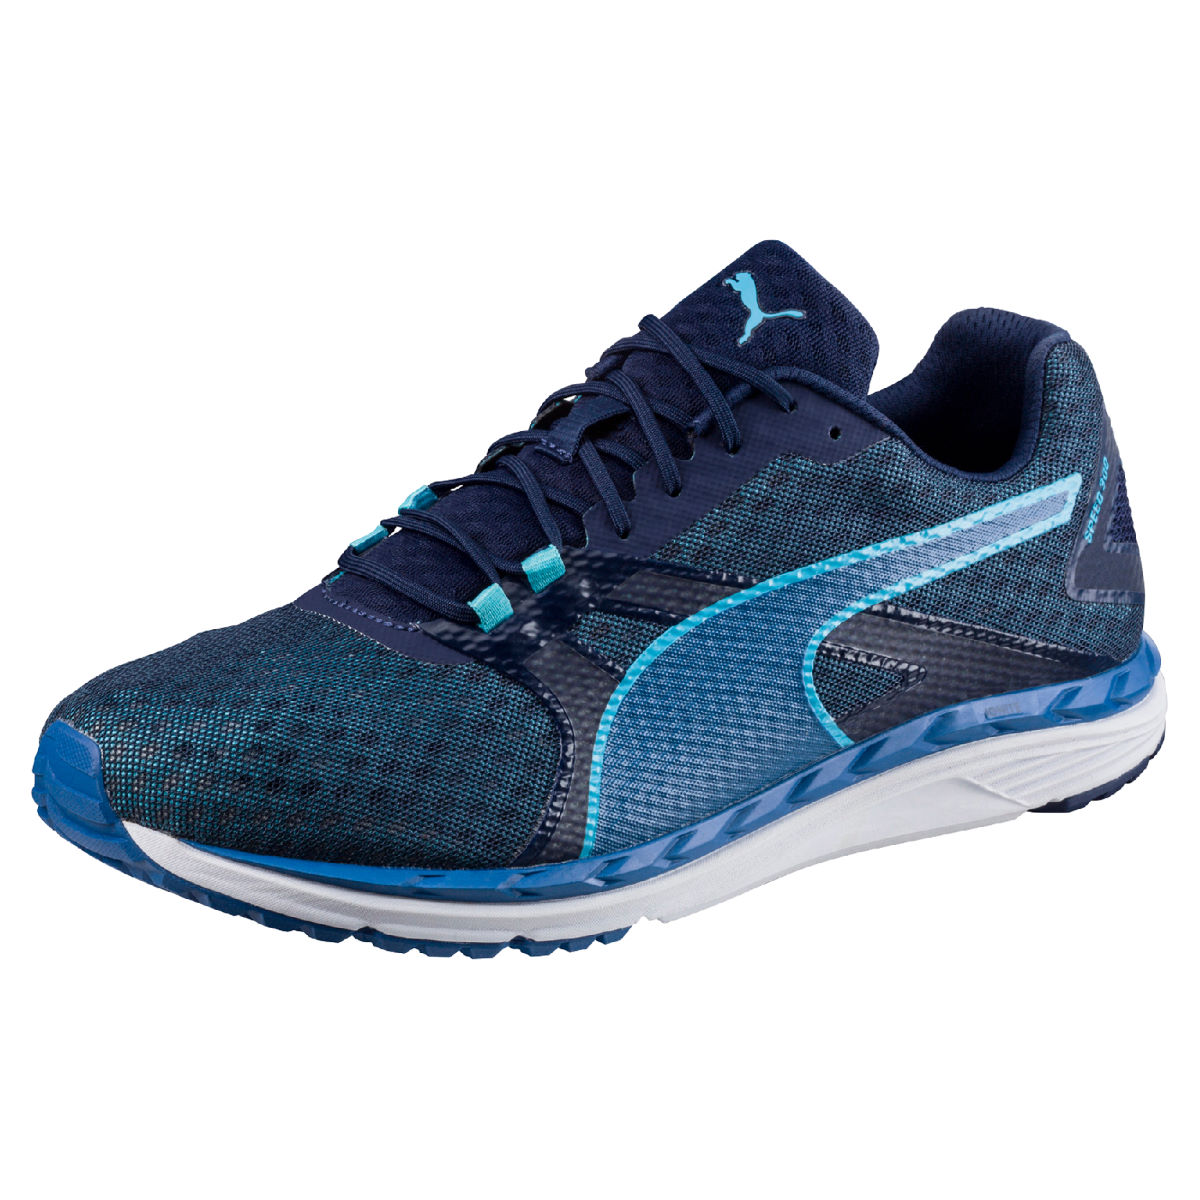 Chaussures Puma Speed 300 Ignite 2 - 10 Bleu